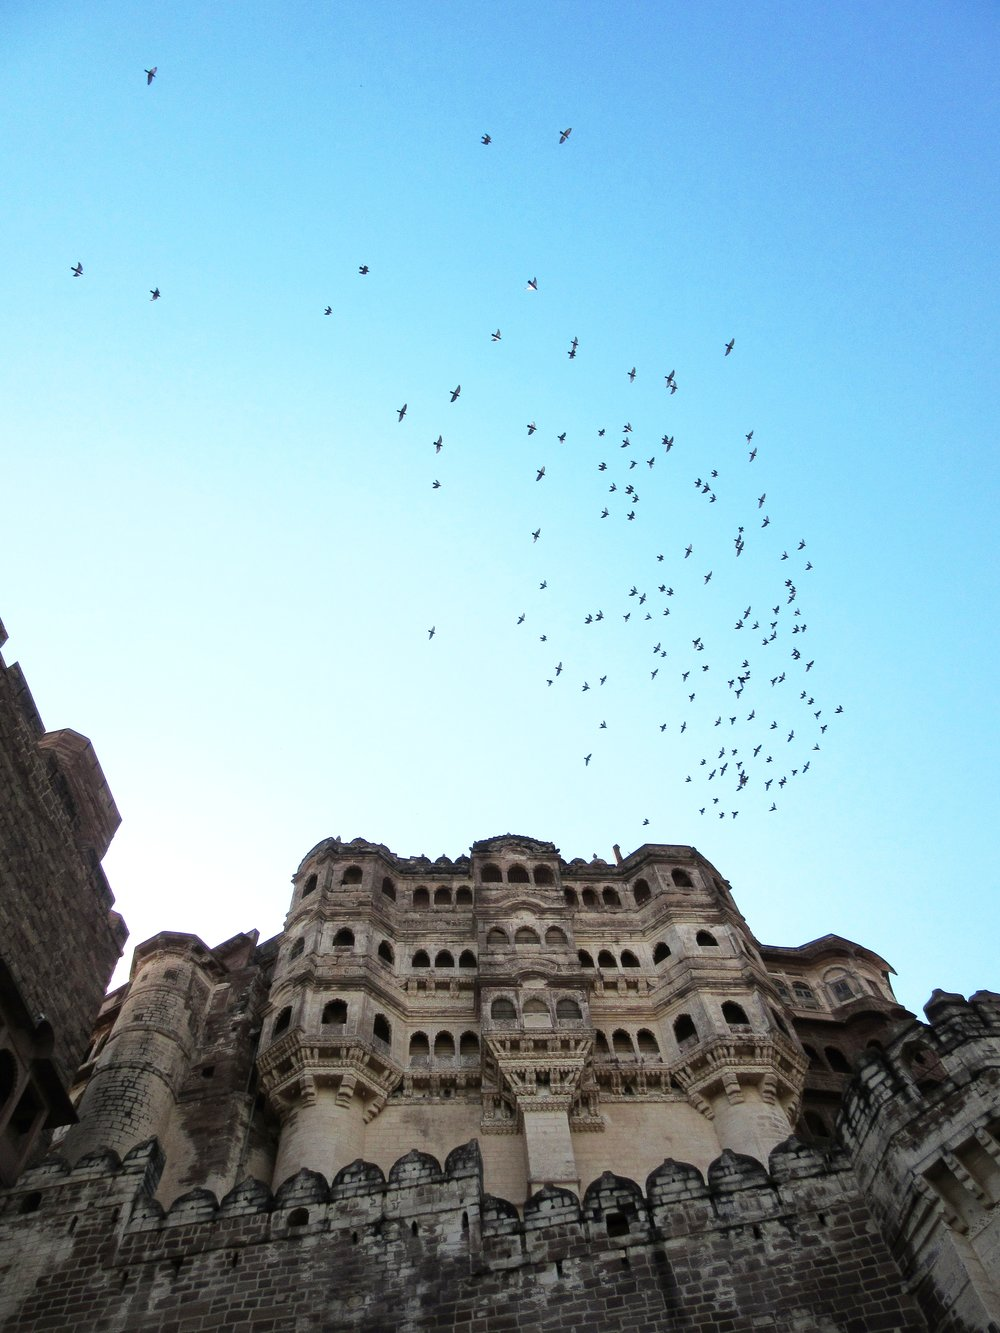 MEHRANGARH FORT PROVIDES A SPECTACULAR VENUE FOR THE WORLD SUFI MUSIC FESTIVAL